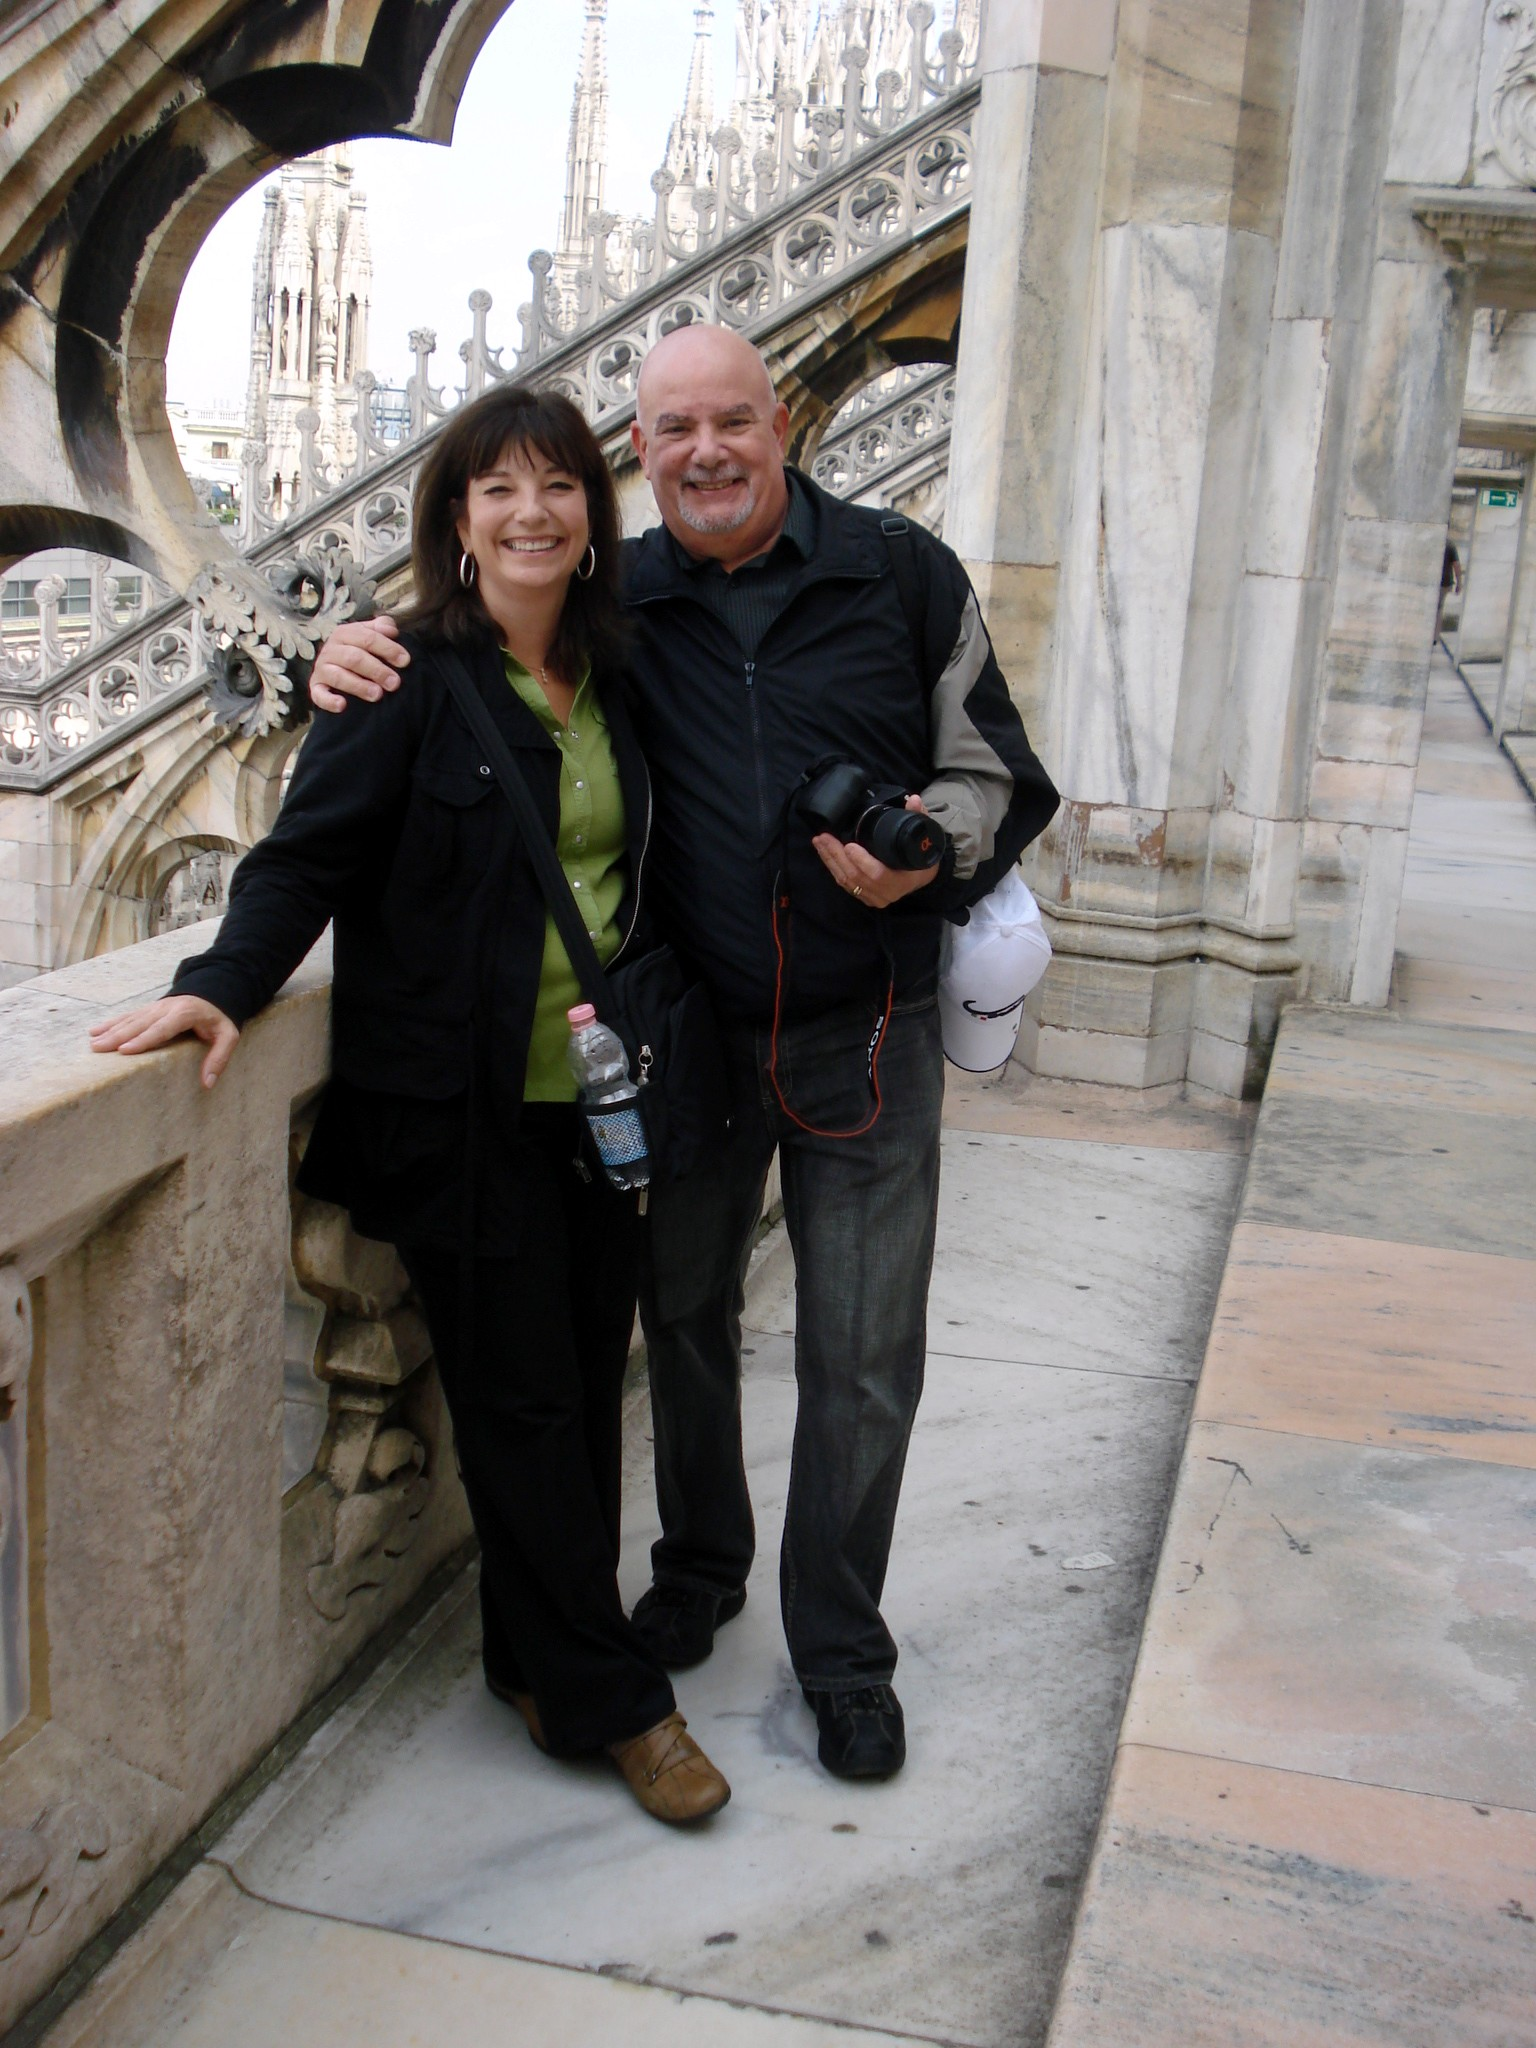 Ilene and Gary Modica, together in Milano